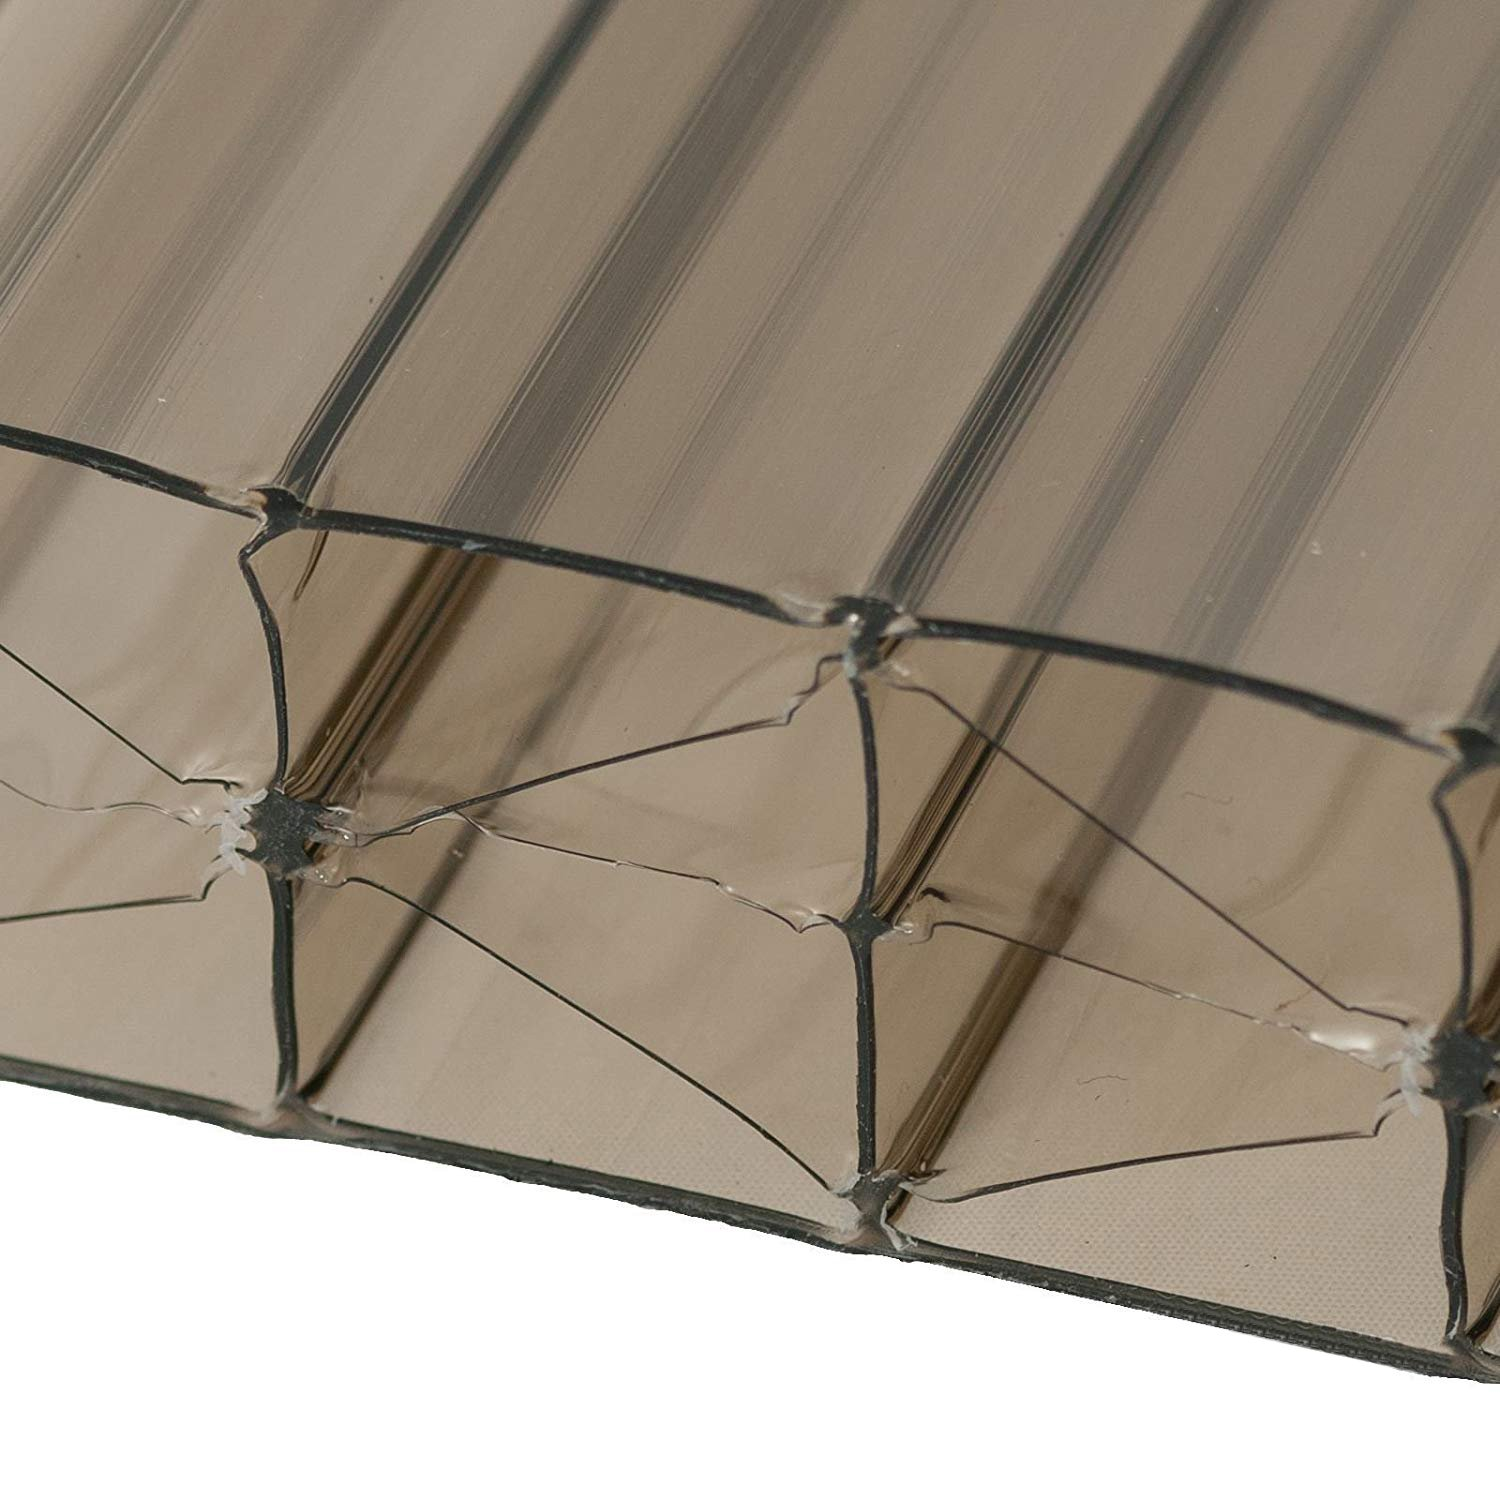 1m x 3m (width x length) Bronze, 1 x 3m (Width x Length) 35mm Multiwall Polycarbonate Sheets Poly Plastic Roof Panel for Lean-to Canopy Conservatory